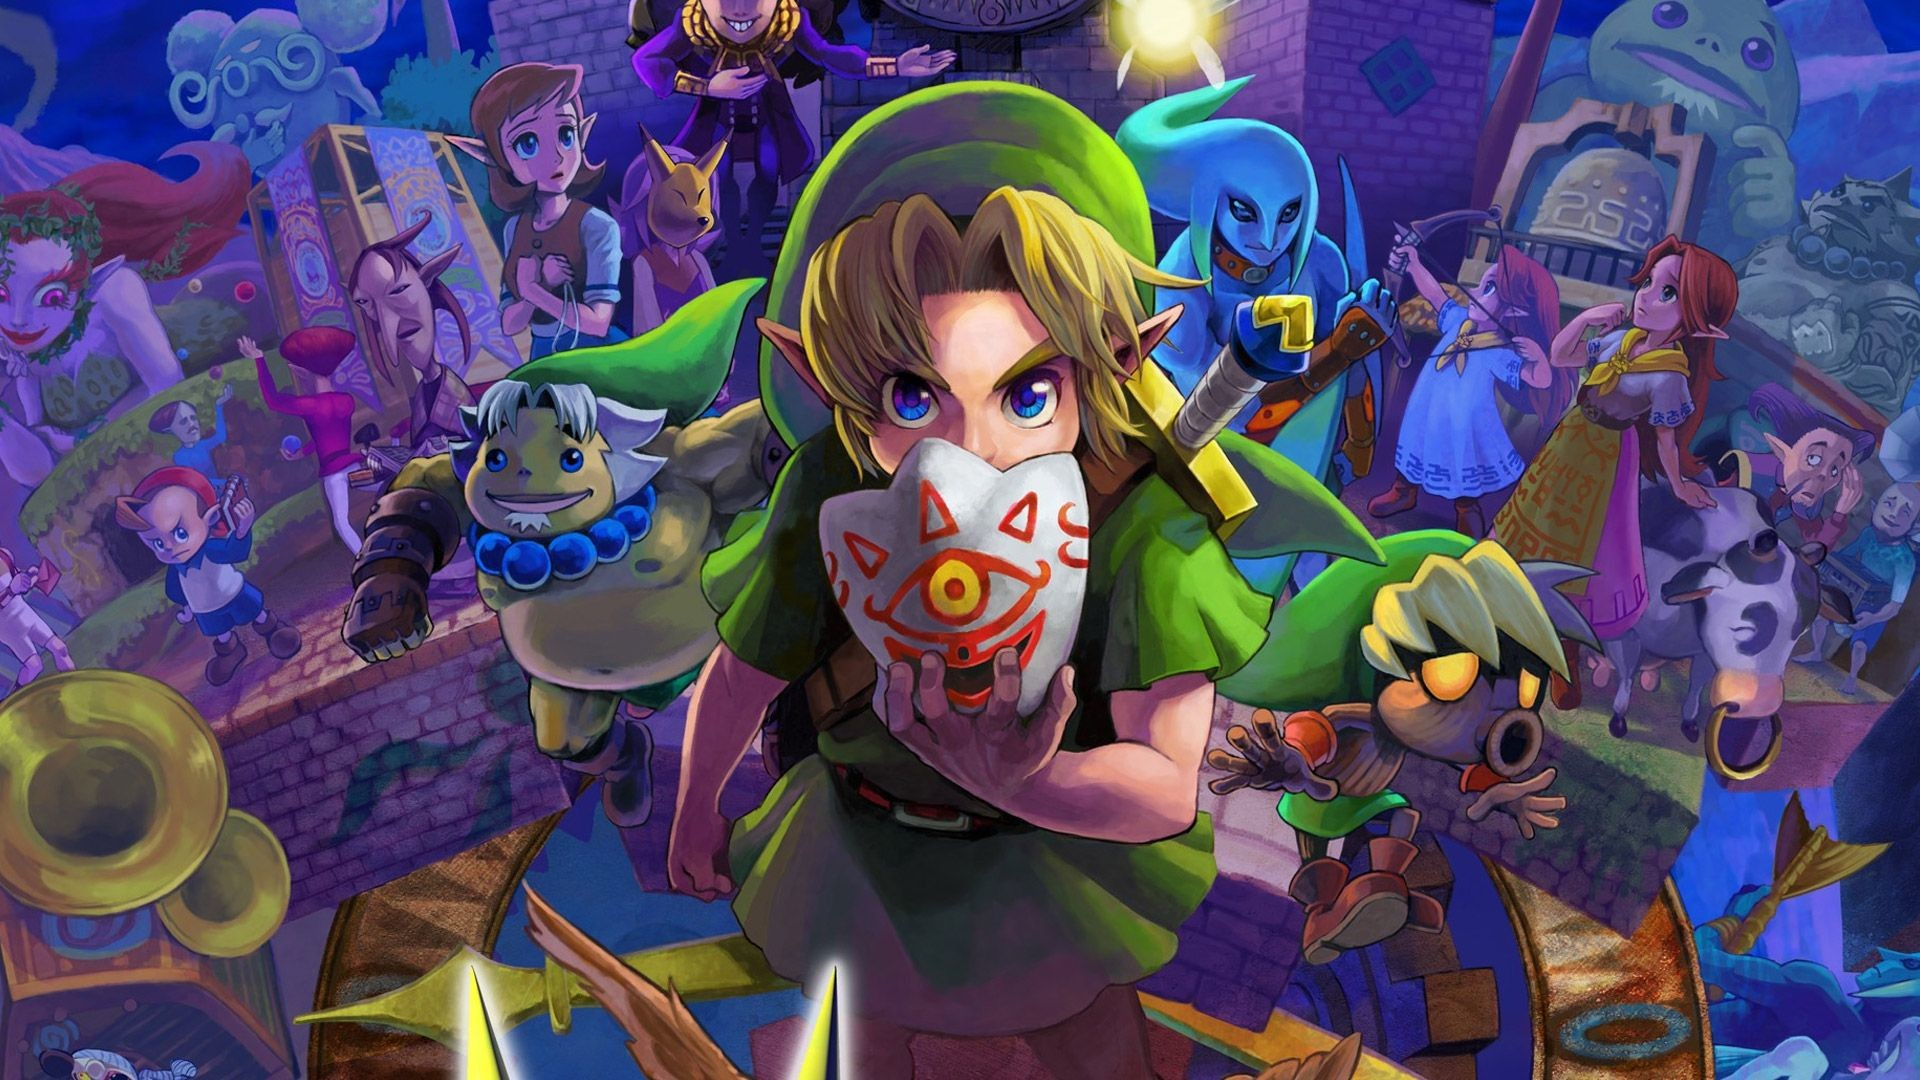 Res: 1920x1080, The Legend Of Zelda HD high quality wallpapers download